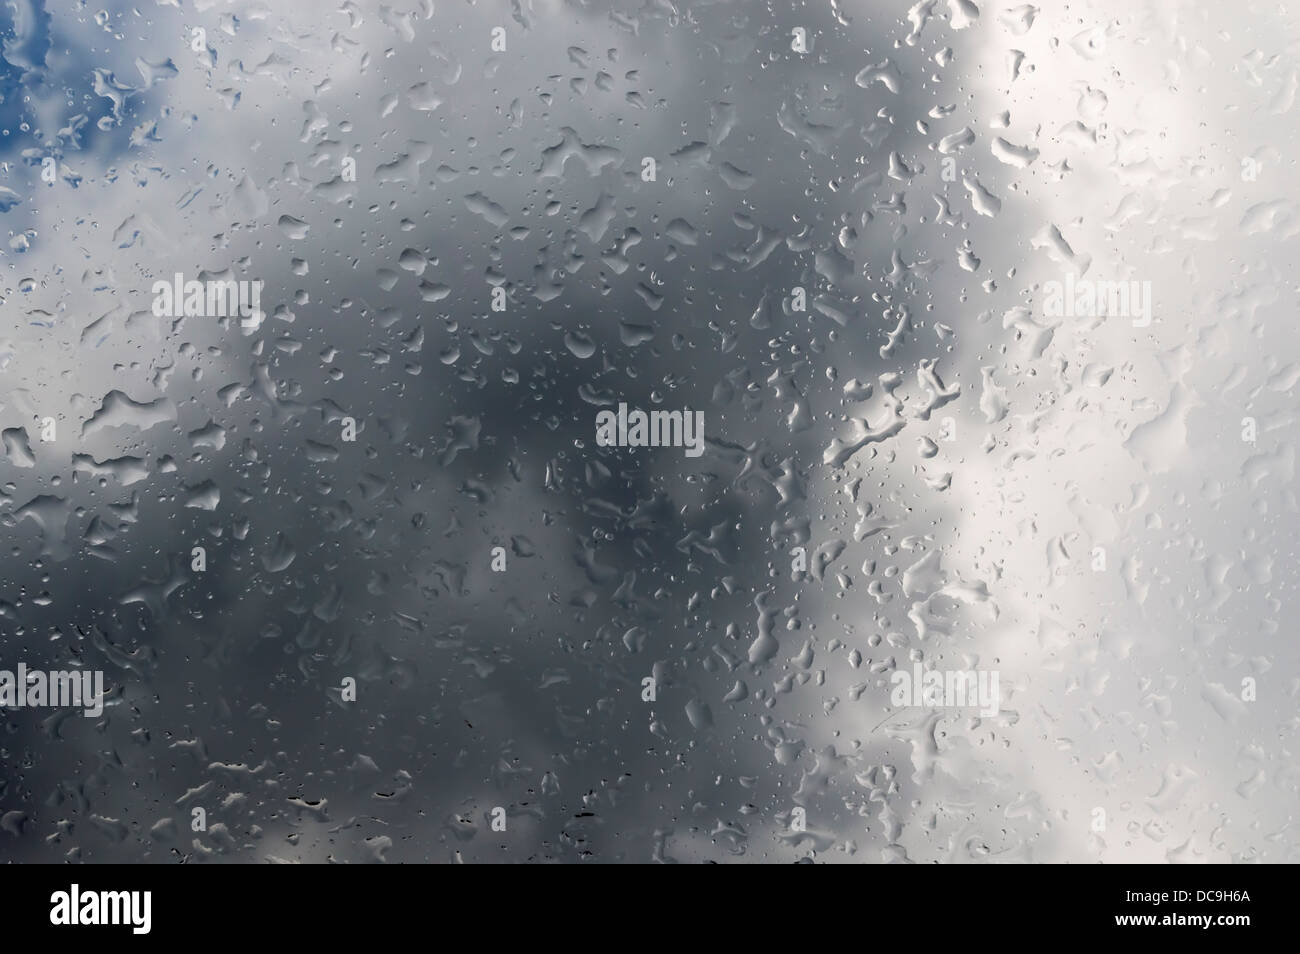 Droplets of water on window - Stock Image